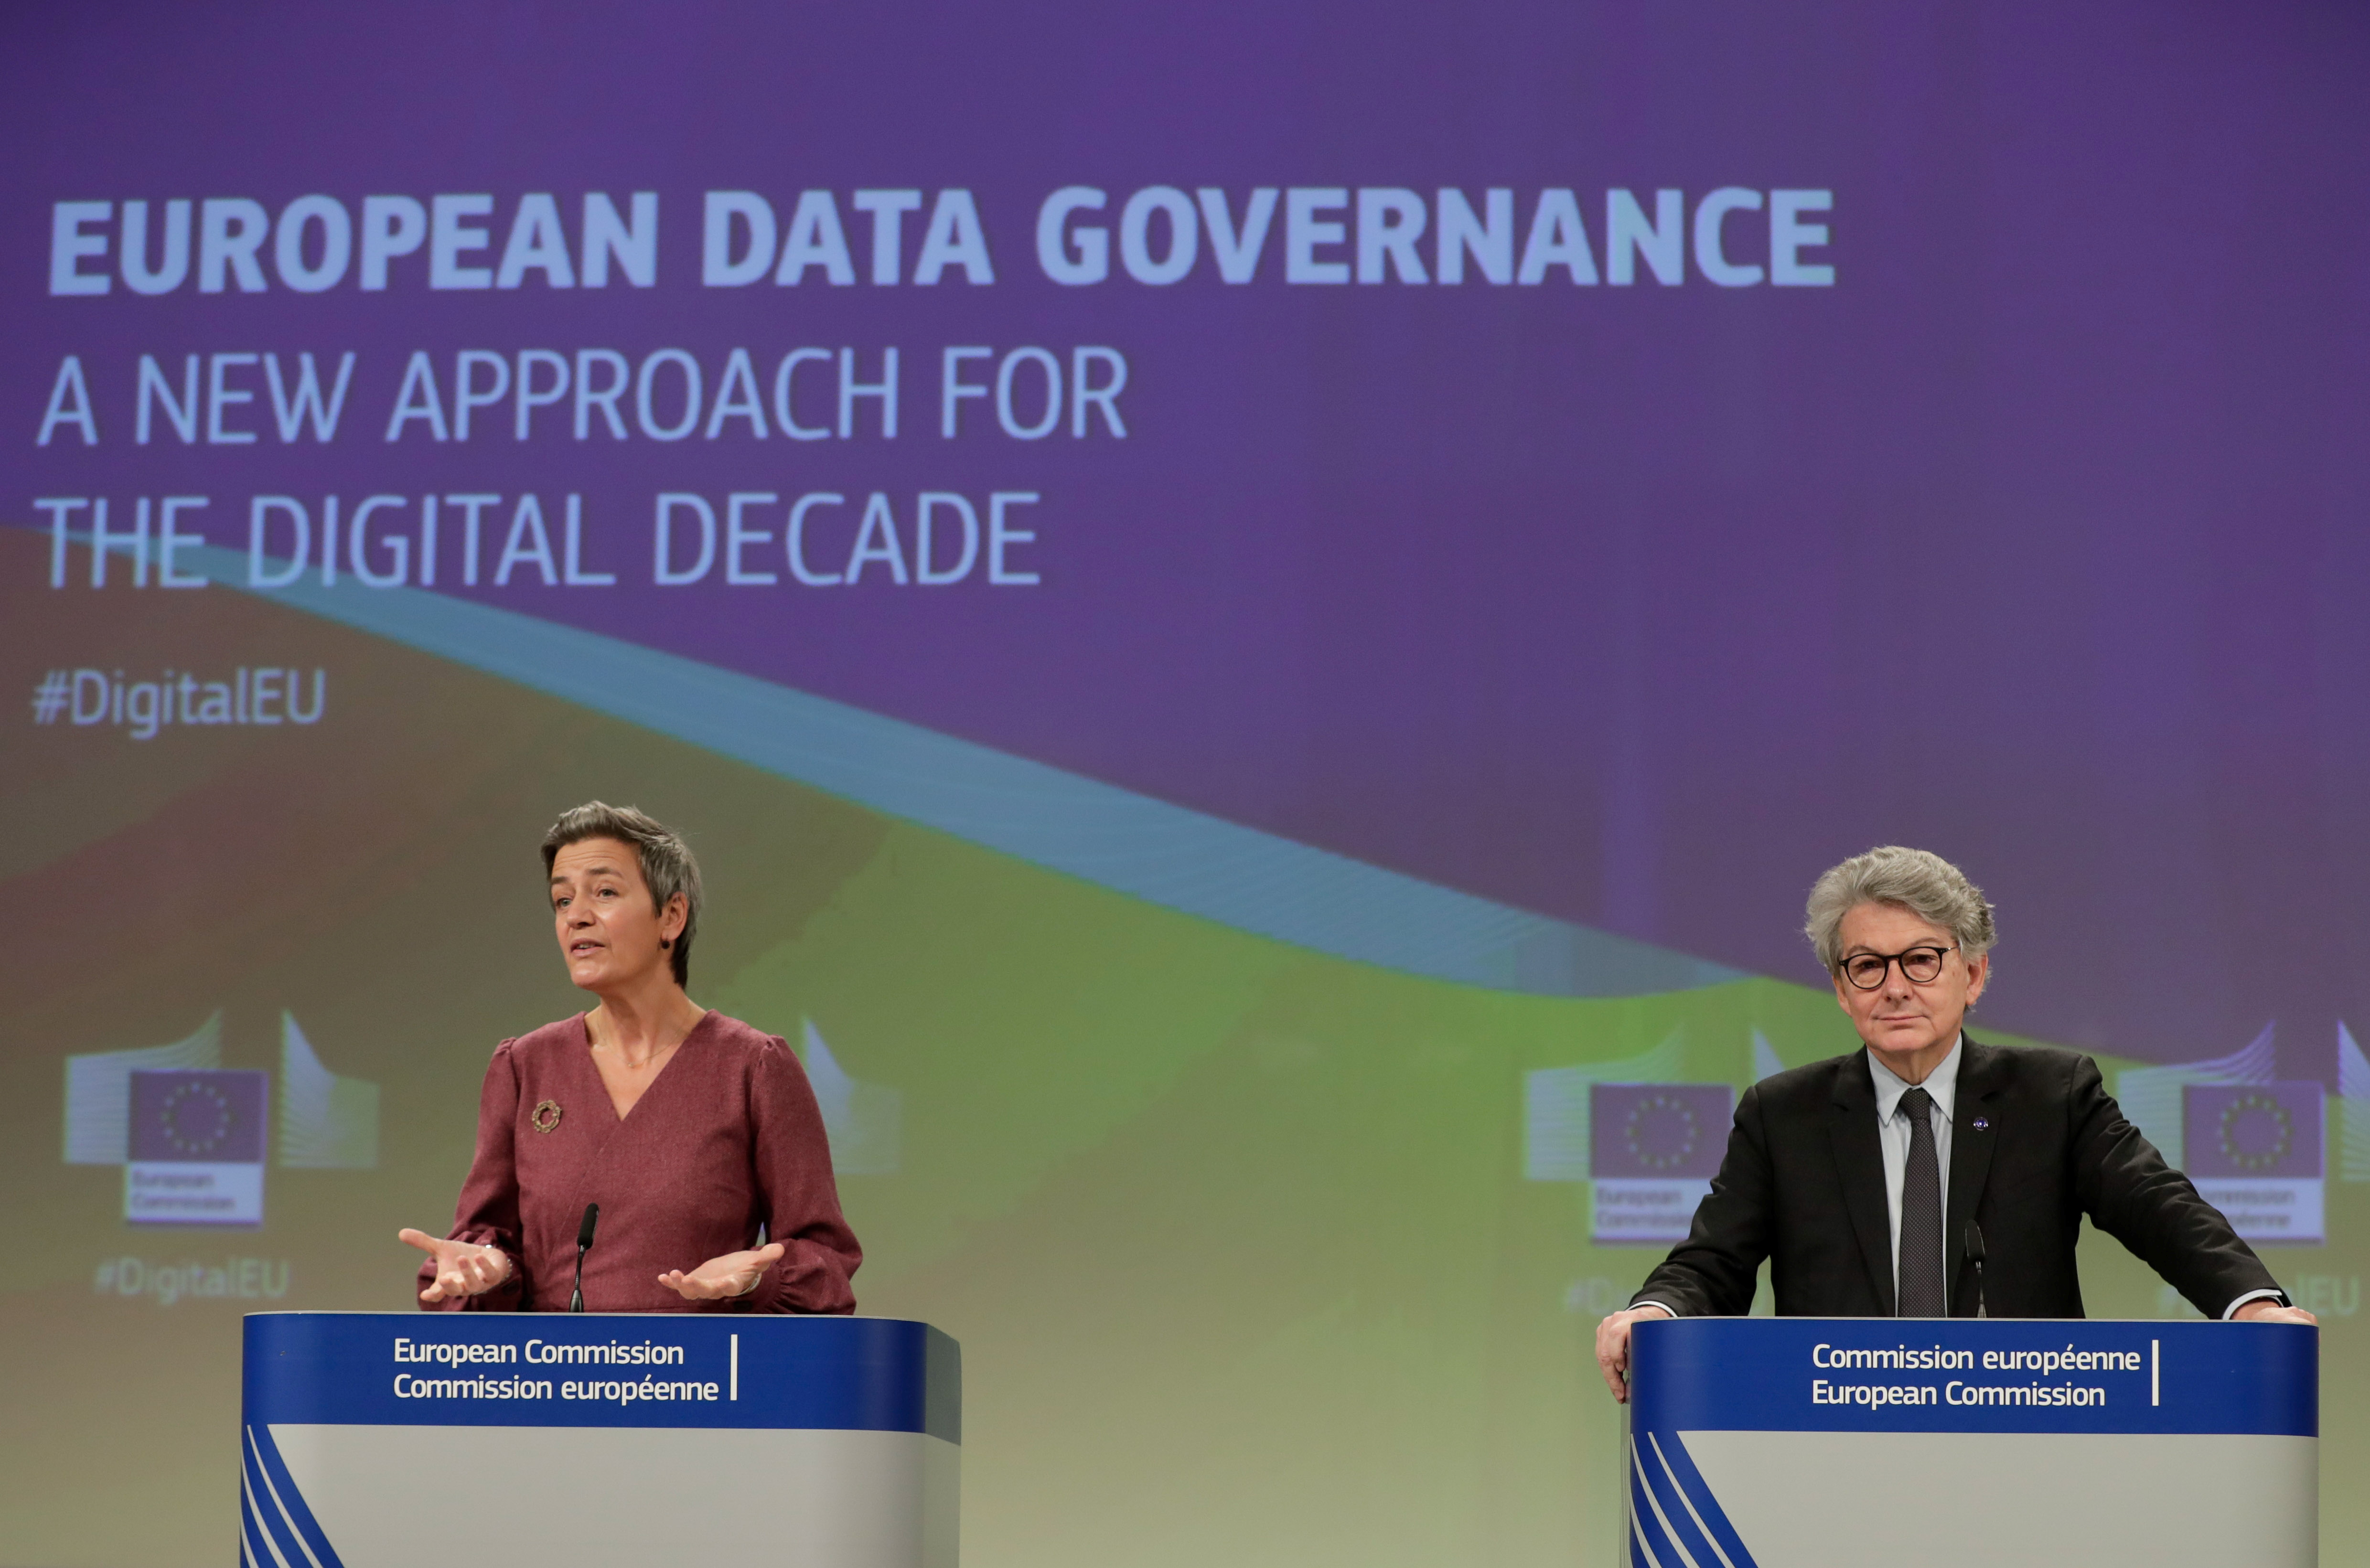 European Commissioner for Internal Market and Services Thierry Breton and European Executive Vice-President Margrethe Vestager give a news conference on the Data Governance Act at the European Commission in Brussels, Belgium November 25, 2020. Stephanie Lecocq/Pool via REUTERS/File Photo